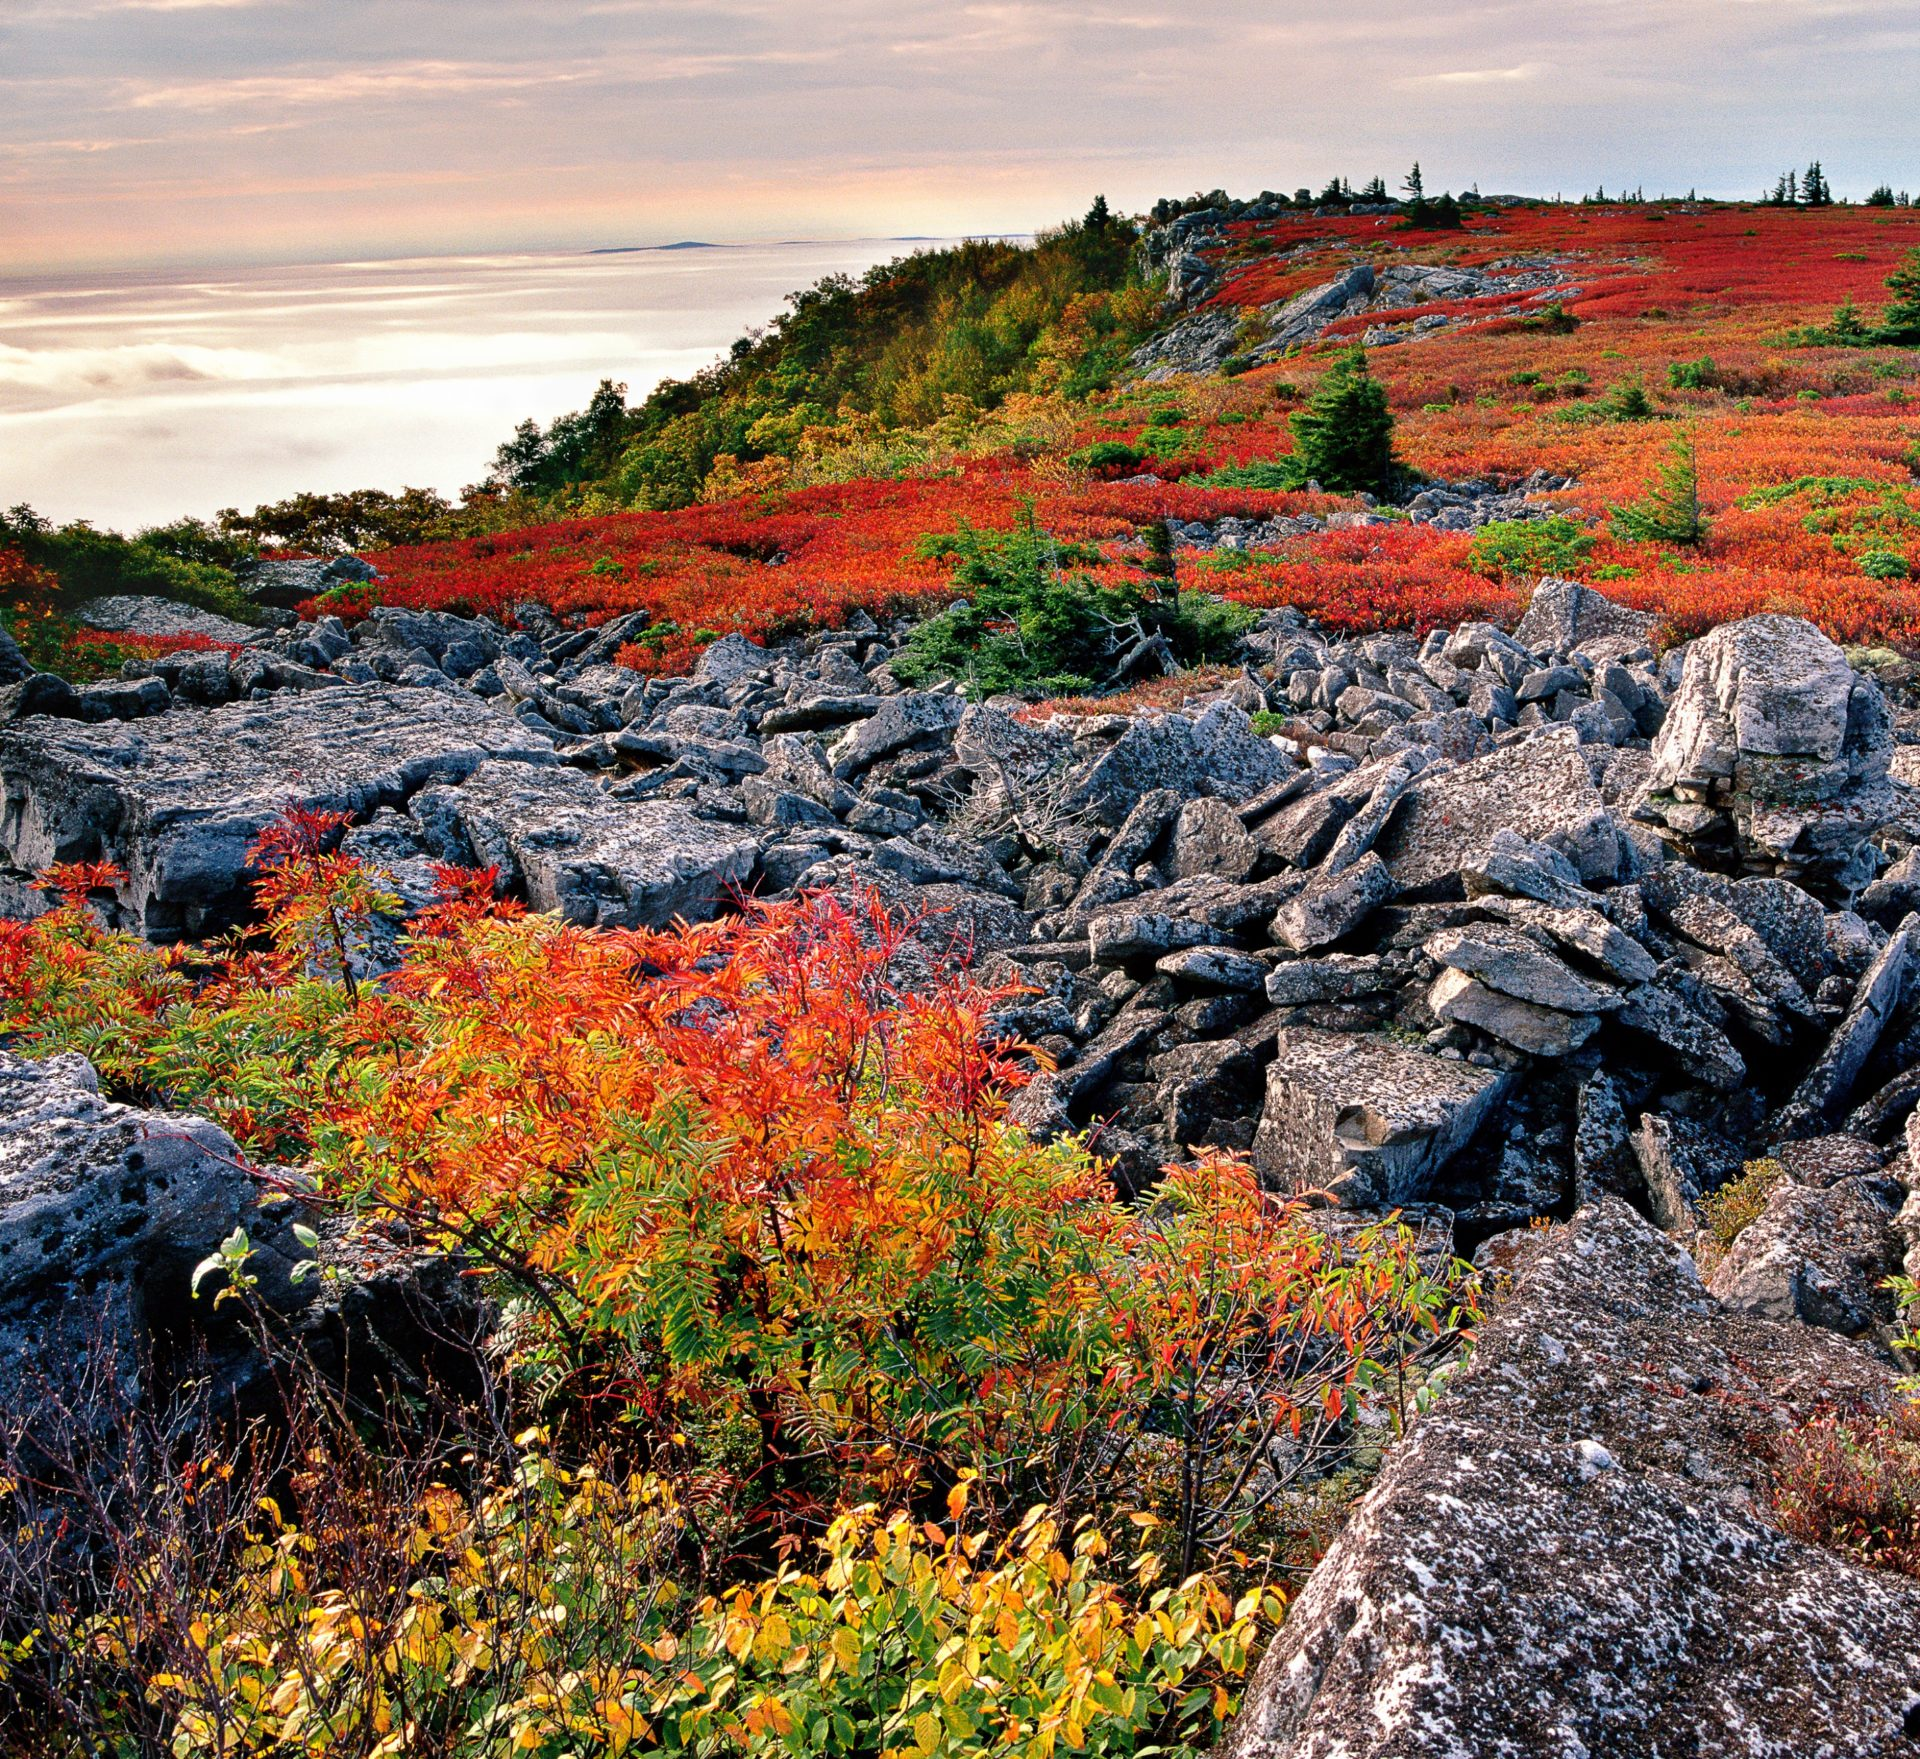 22-A ROUGH AND WILD, DOLLY SODS SCENIC AREA,MNF, WV © KENT MASON